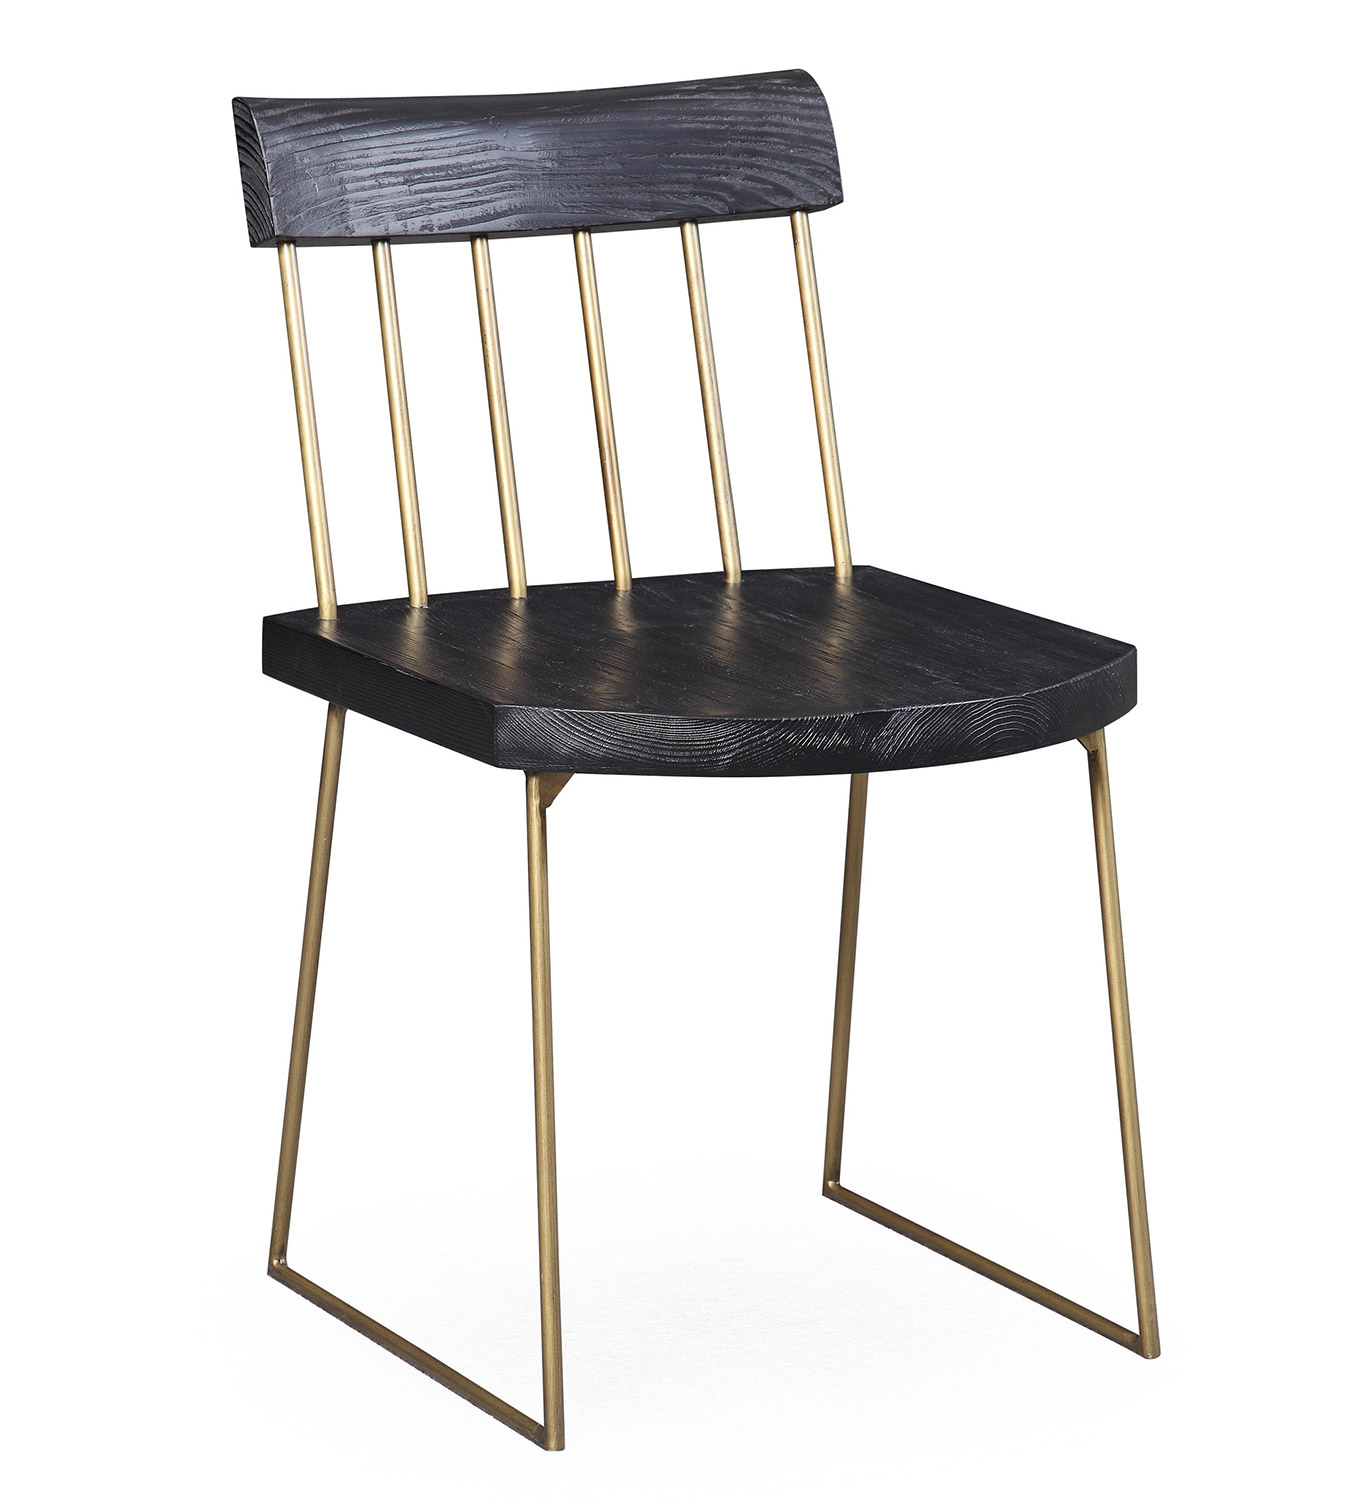 TOV Furniture Madrid Pine Chair - Matte Black - Set of 2